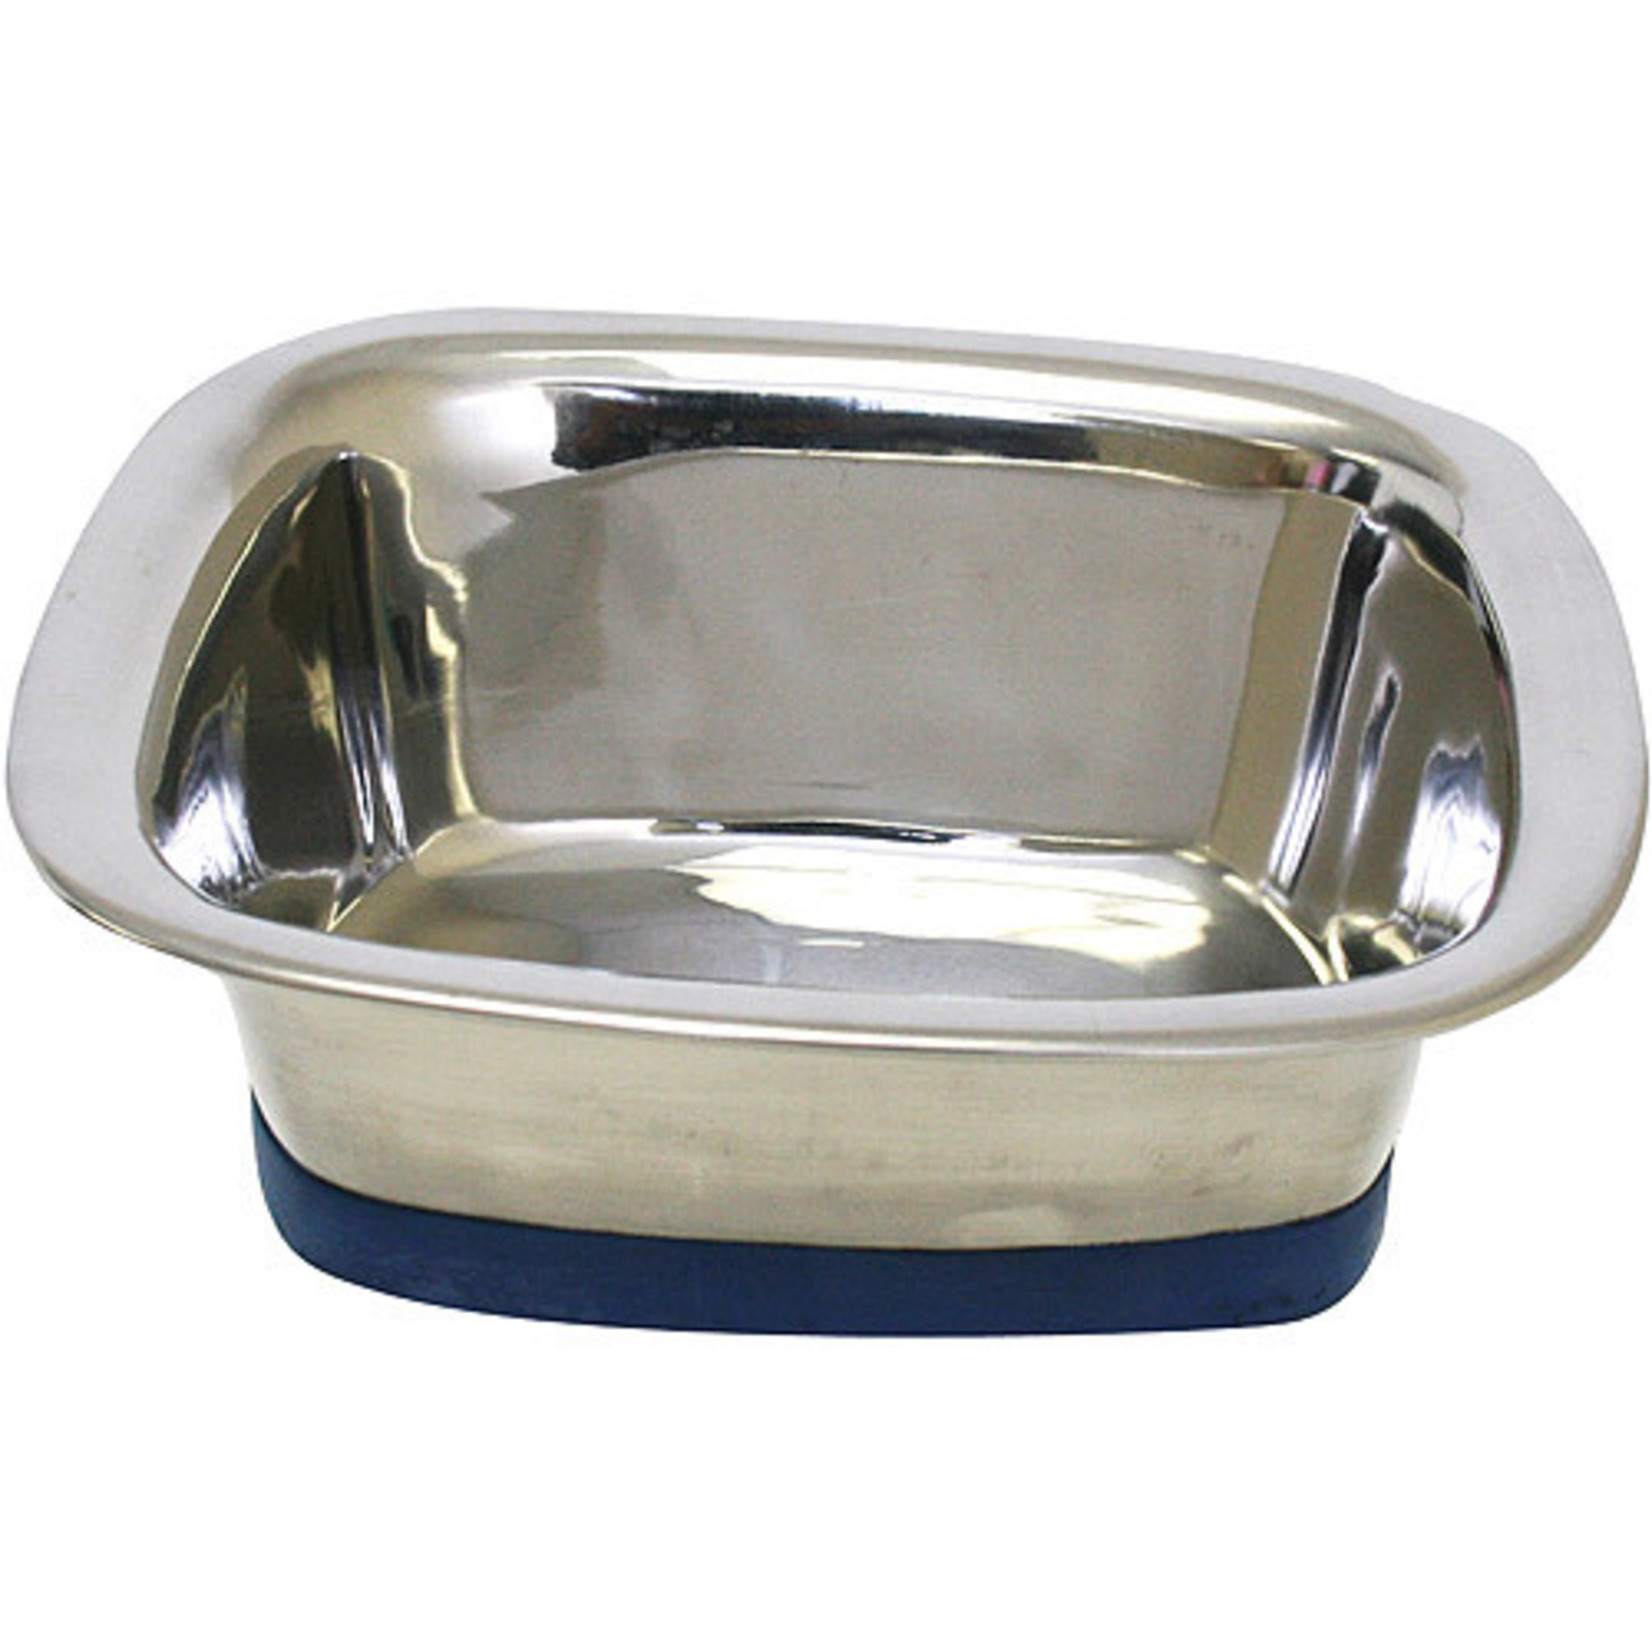 Our Pets Company Durapet Stainless Steel Bowl Square Large